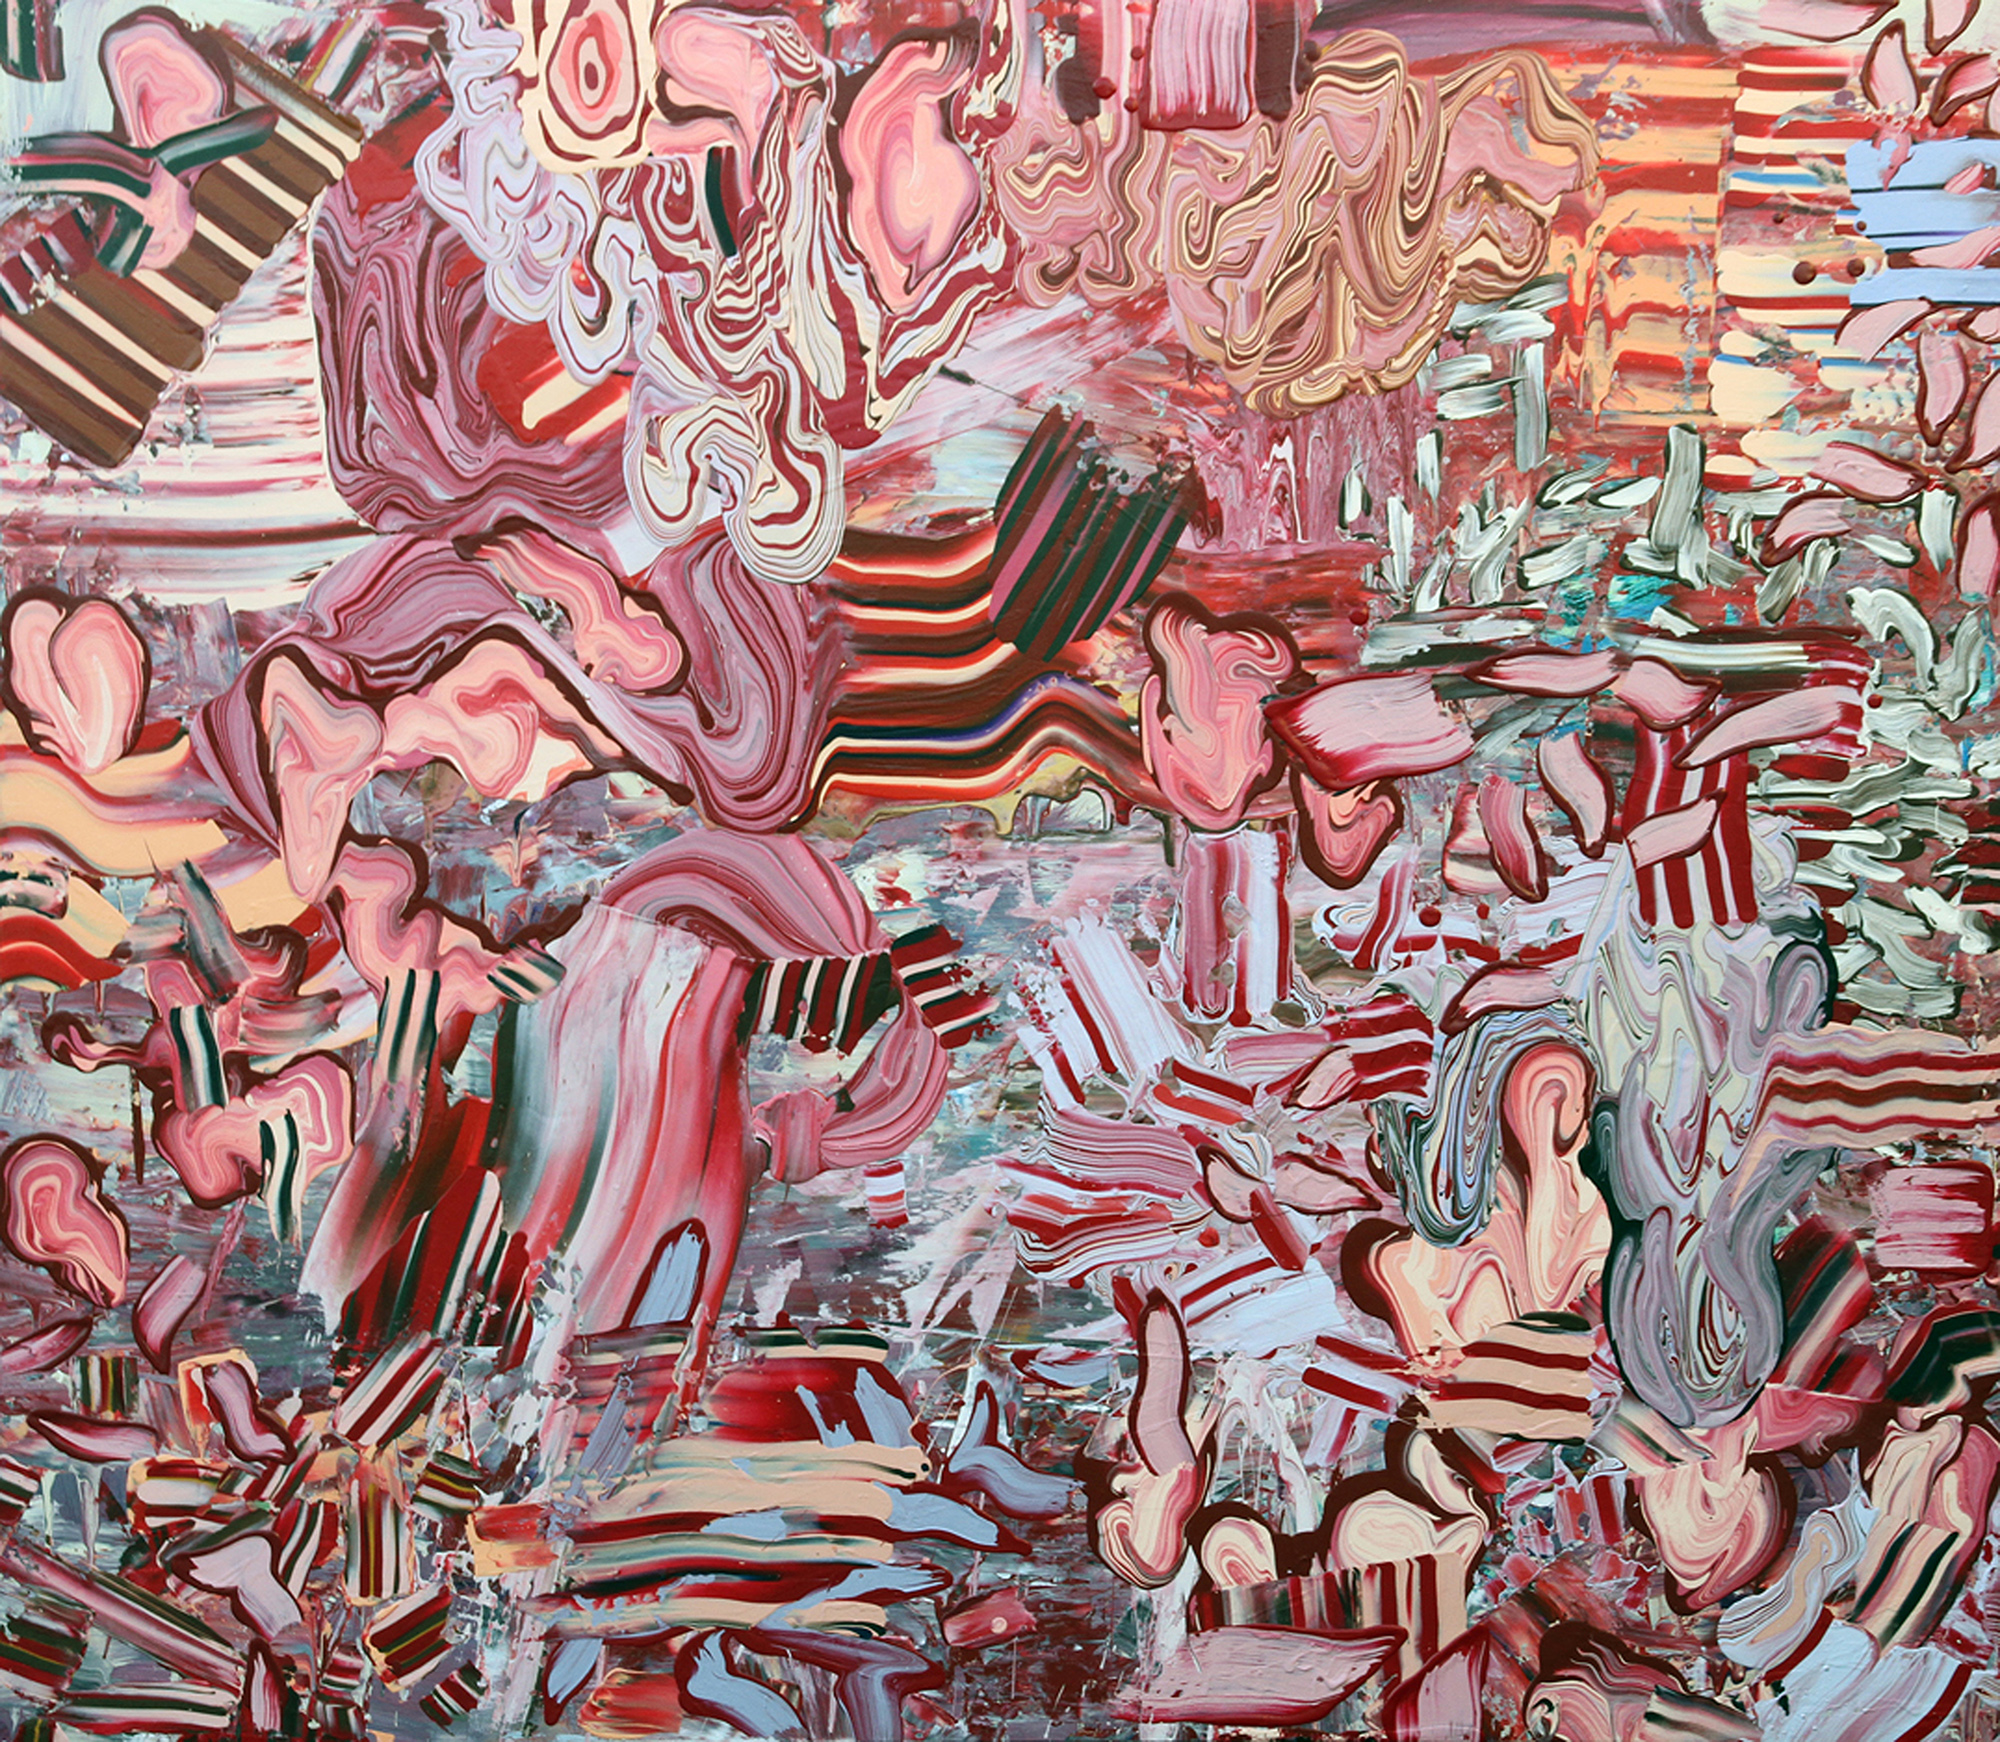 残红 Red Remnant  恩里克·奥利维拉 Henrique Oliveira  布面丙烯 Acrylic on canvas  200×230cm 2011 .jpg